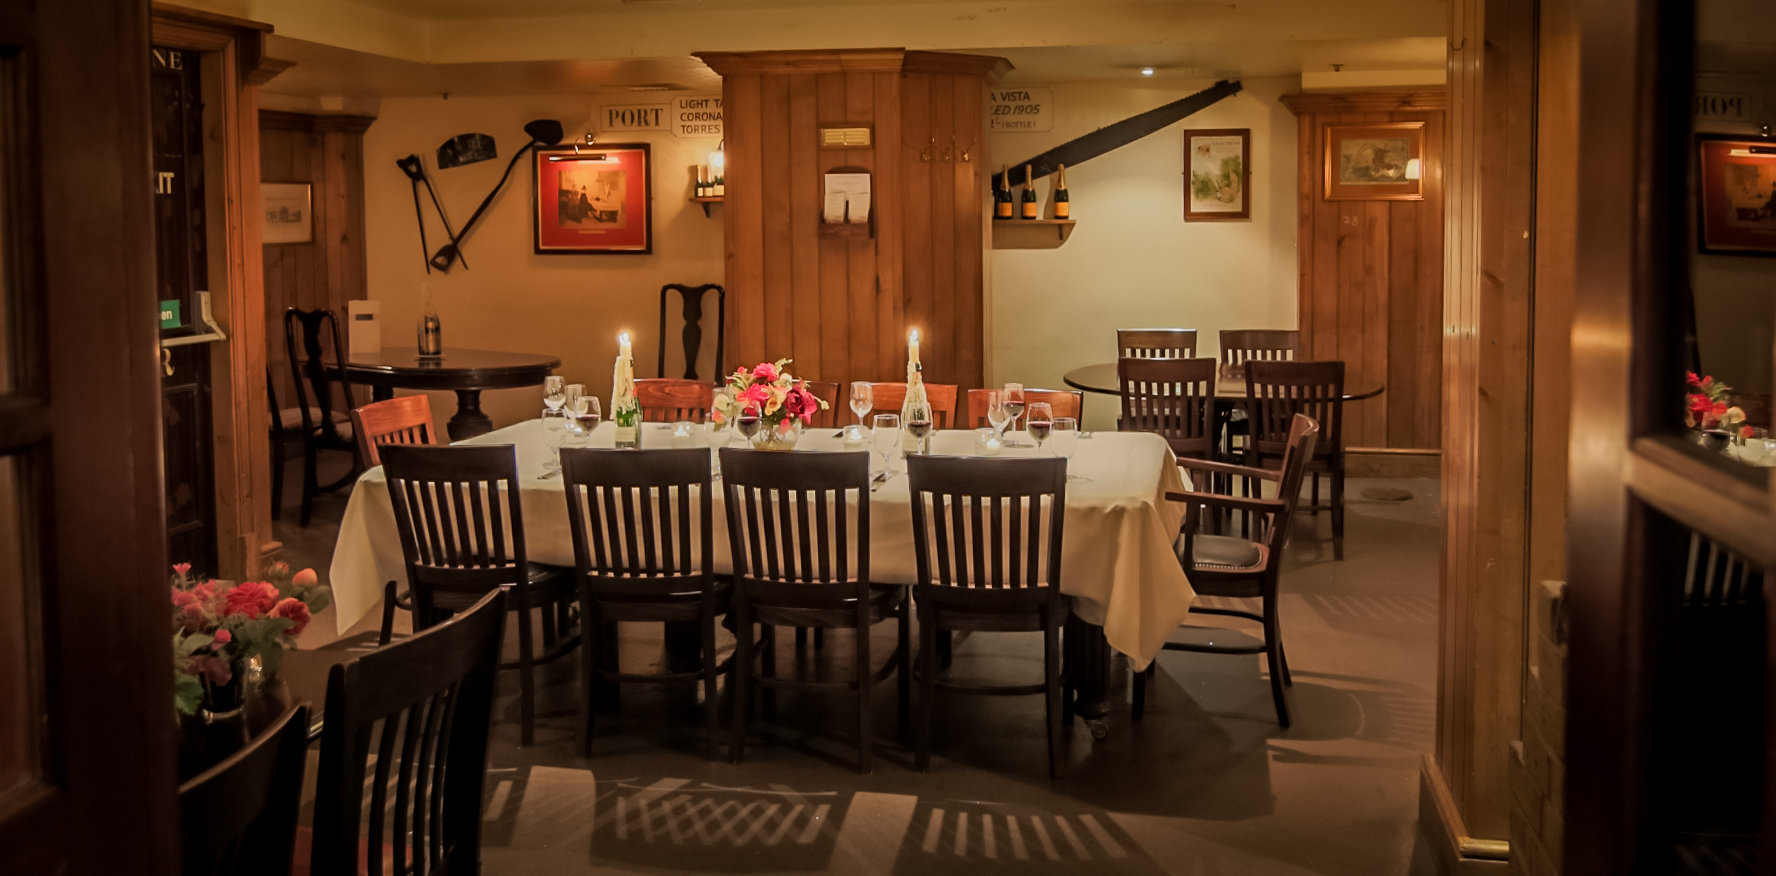 Outstanding Champagne Charlies  London  Wine Bar  Restaurant  Davys With Inspiring Fortune Garden Leigh On Sea Besides Cheap Gardening Ideas Furthermore Keter Plastic Garden Shed With Extraordinary In The Night Garden Scooter Also Blue Diamond Garden Centres In Addition Bramham Gardens Sw And National Garden Show As Well As Garden Clocks Large Additionally Gardening Websites For Beginners From Davycouk With   Inspiring Champagne Charlies  London  Wine Bar  Restaurant  Davys With Extraordinary Fortune Garden Leigh On Sea Besides Cheap Gardening Ideas Furthermore Keter Plastic Garden Shed And Outstanding In The Night Garden Scooter Also Blue Diamond Garden Centres In Addition Bramham Gardens Sw From Davycouk